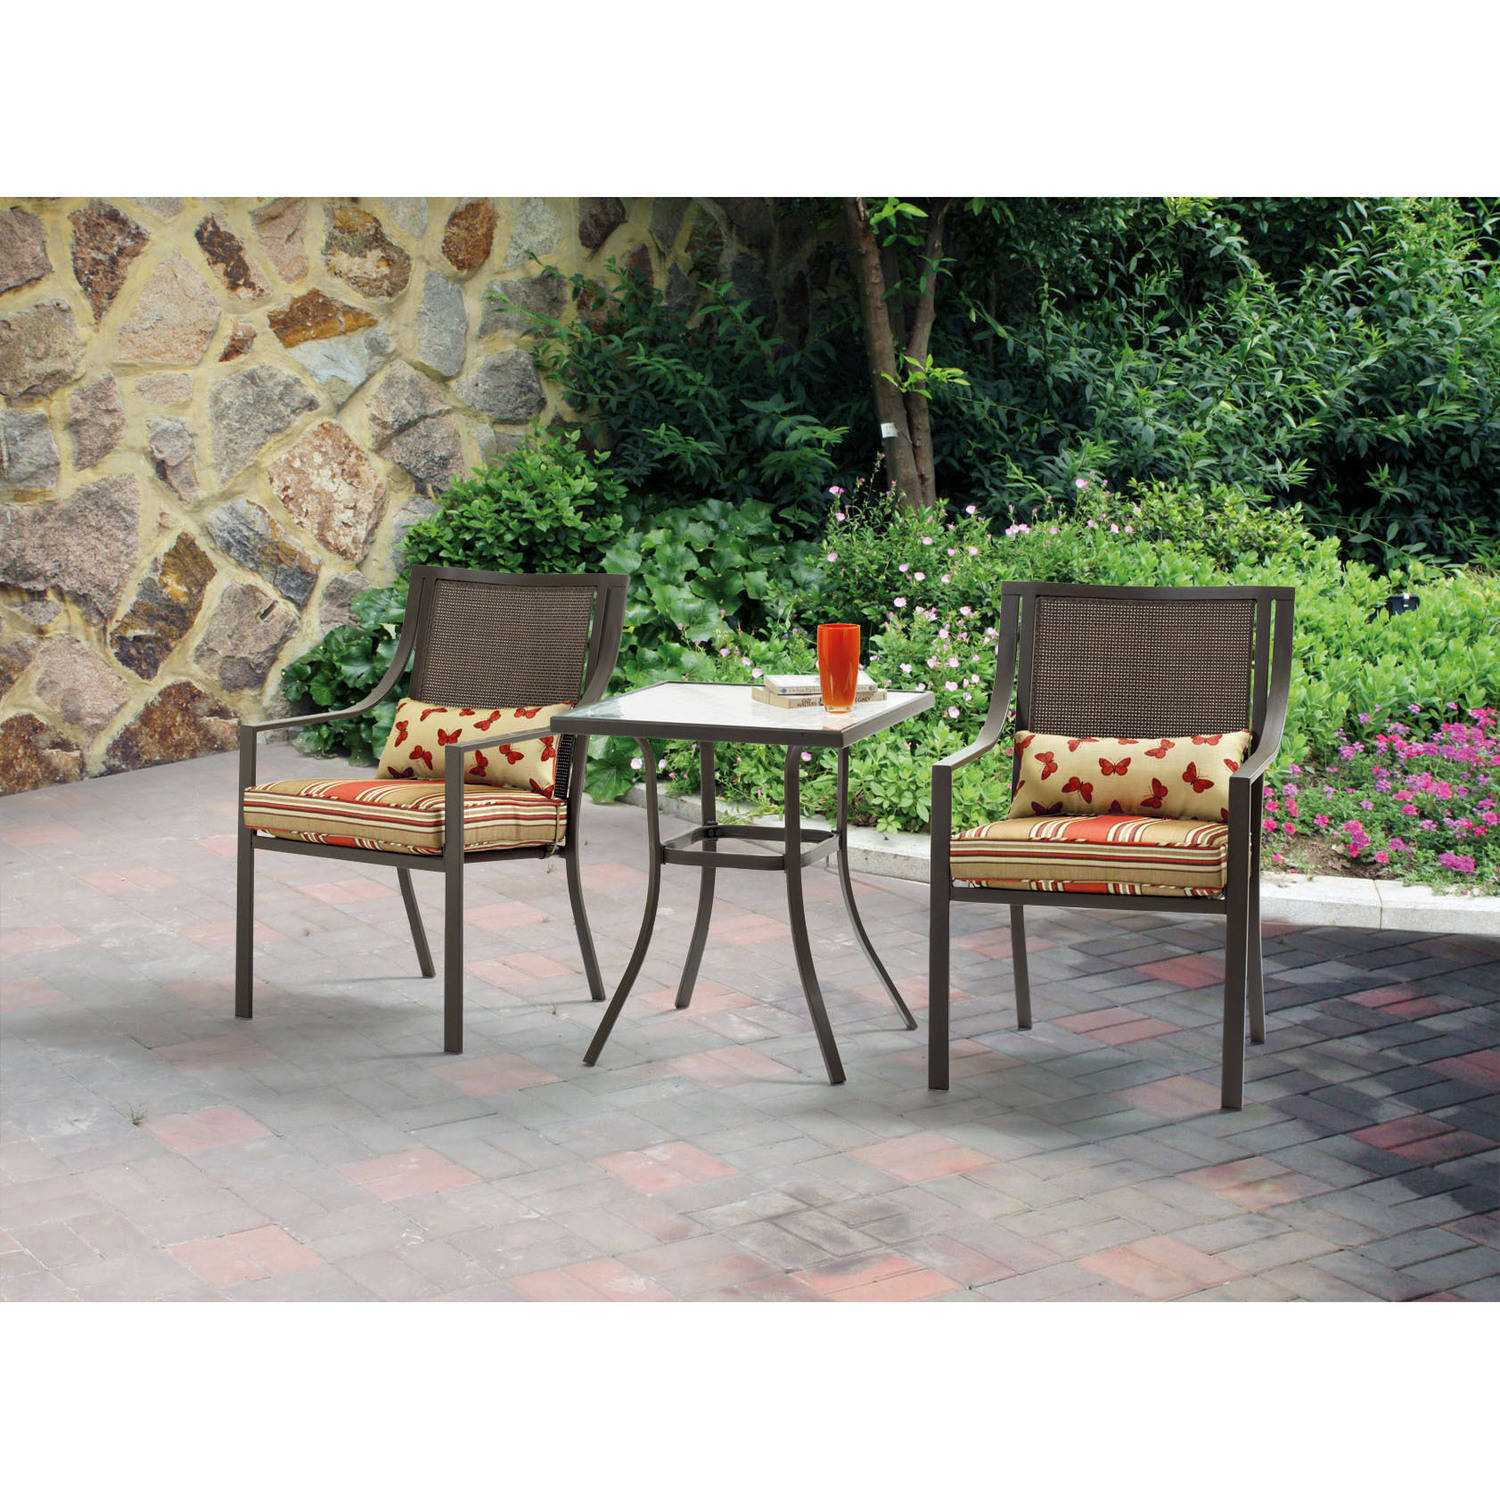 Mainstays Alexandra Square 3-Piece Outdoor Bistro Set, Seats 2